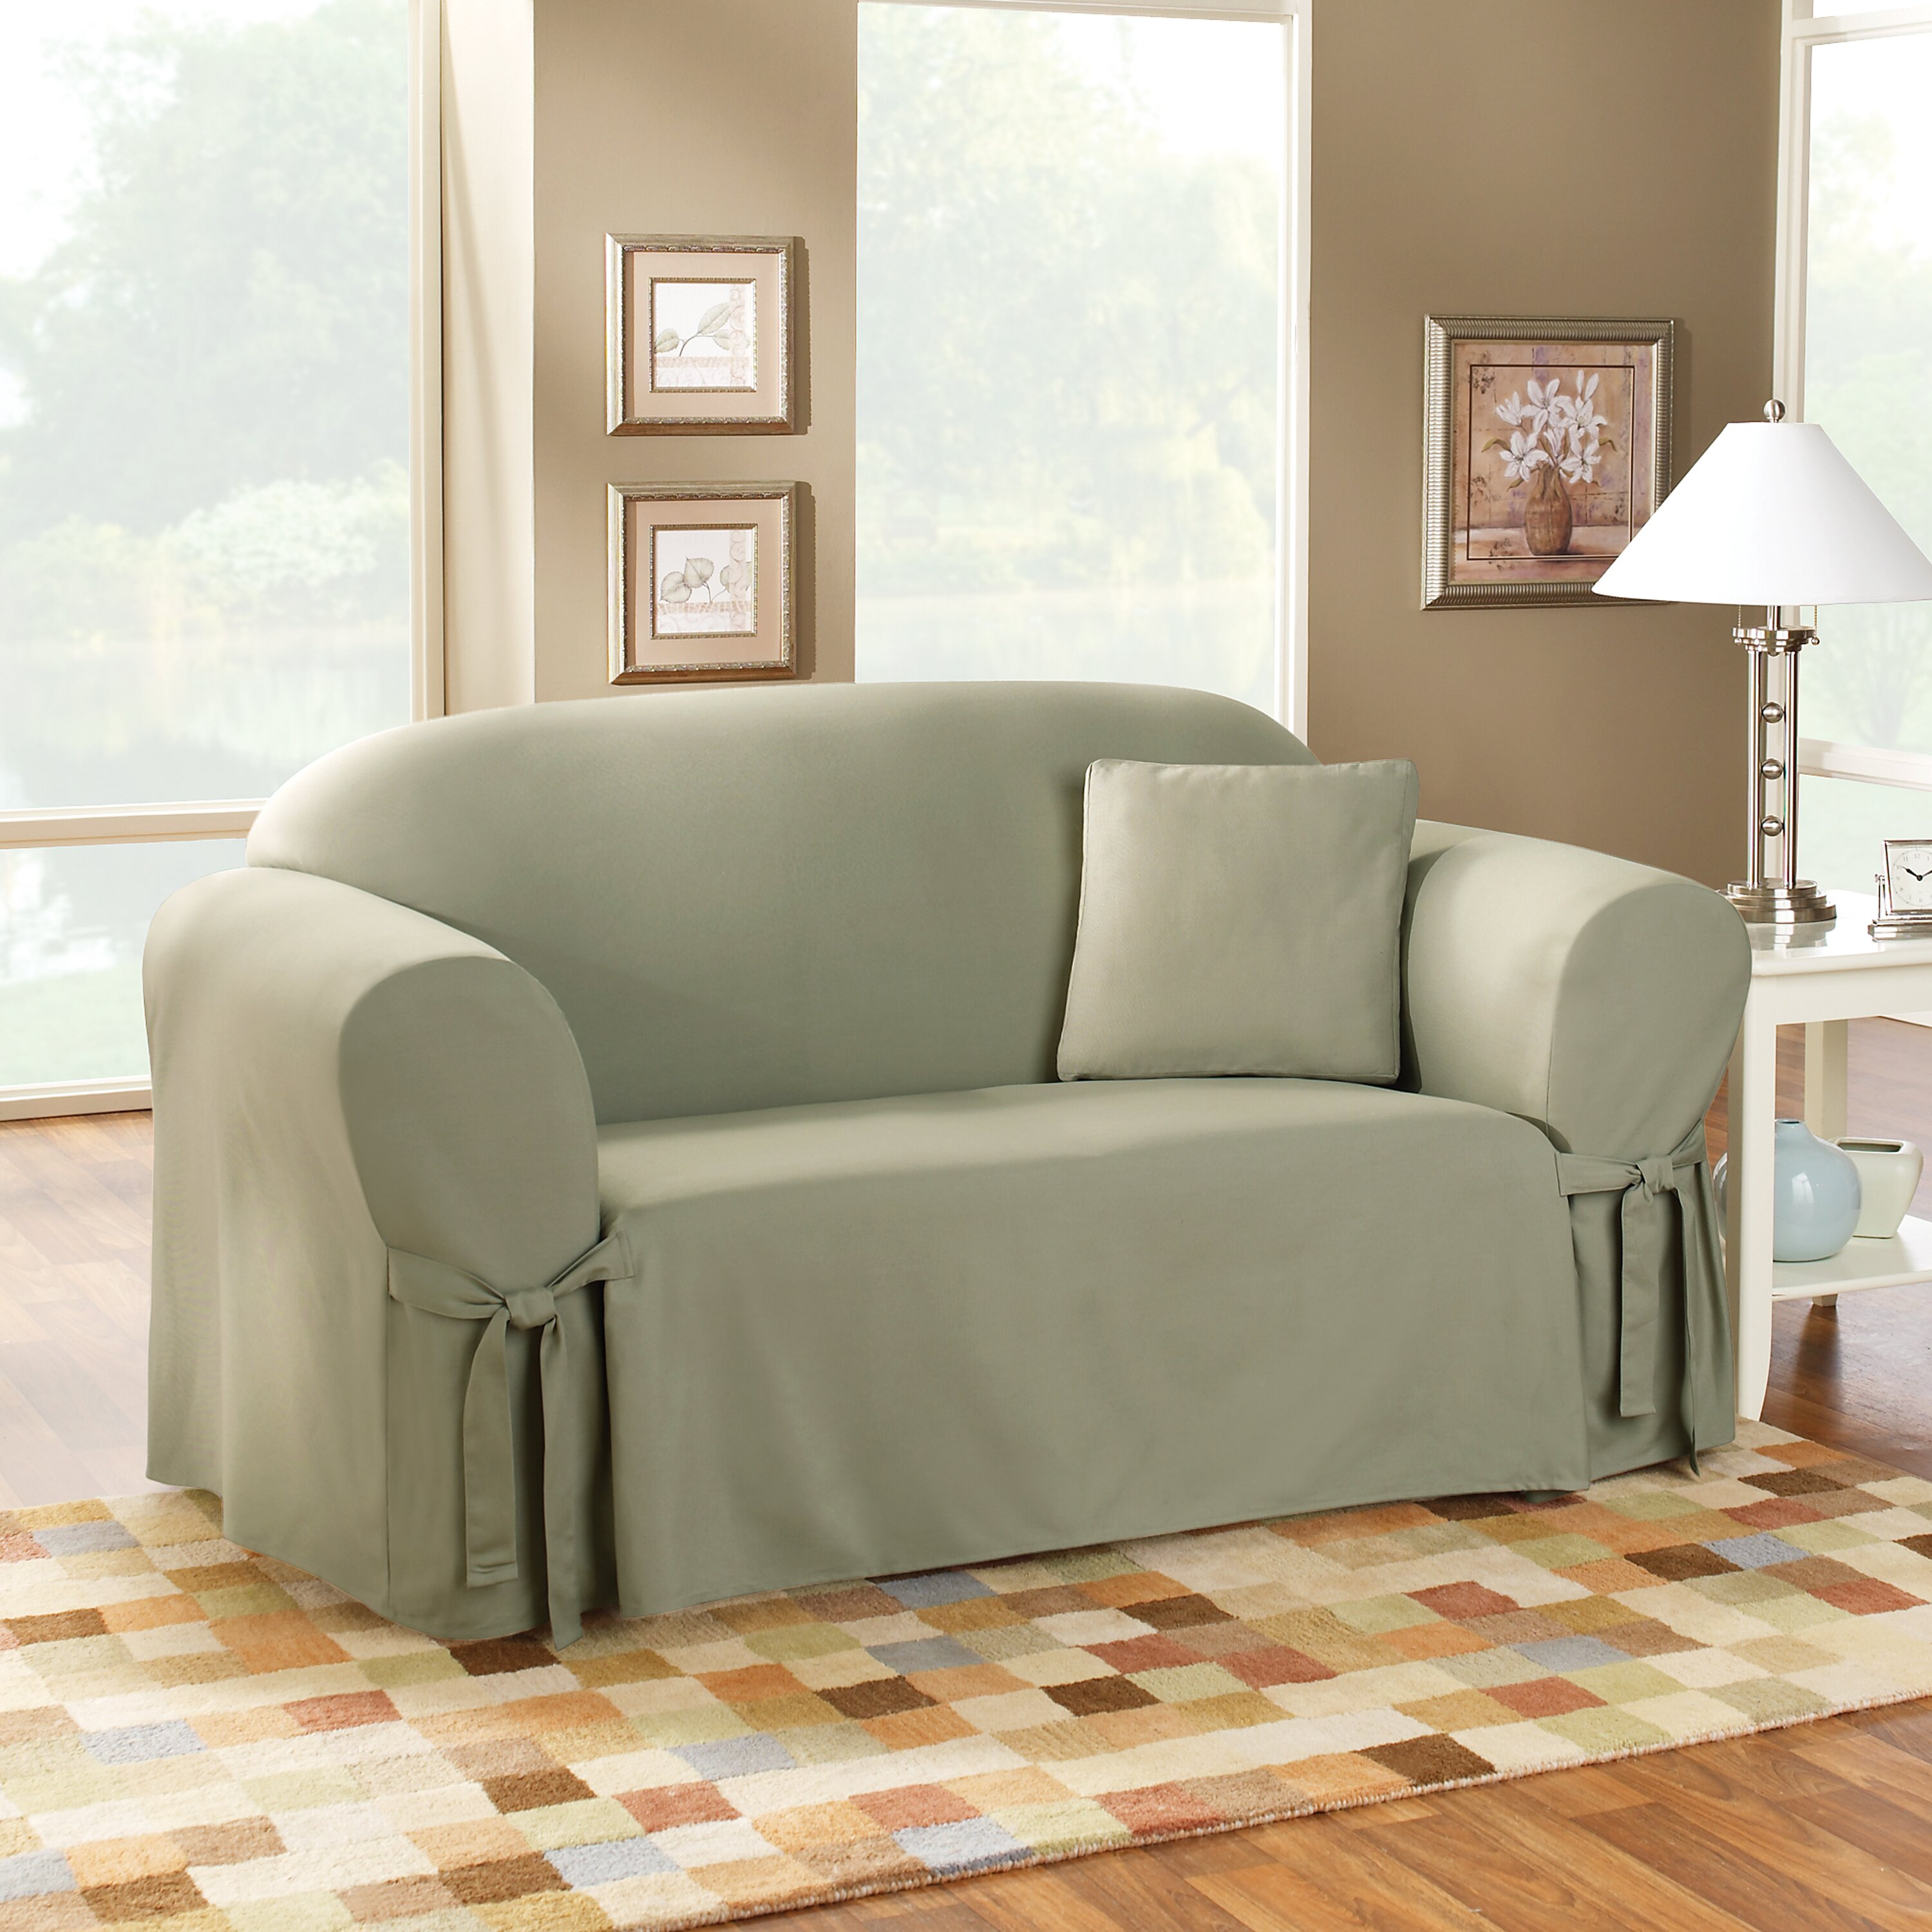 Sure Fit Cotton Duck Sofa Skirted Slipcover & Reviews